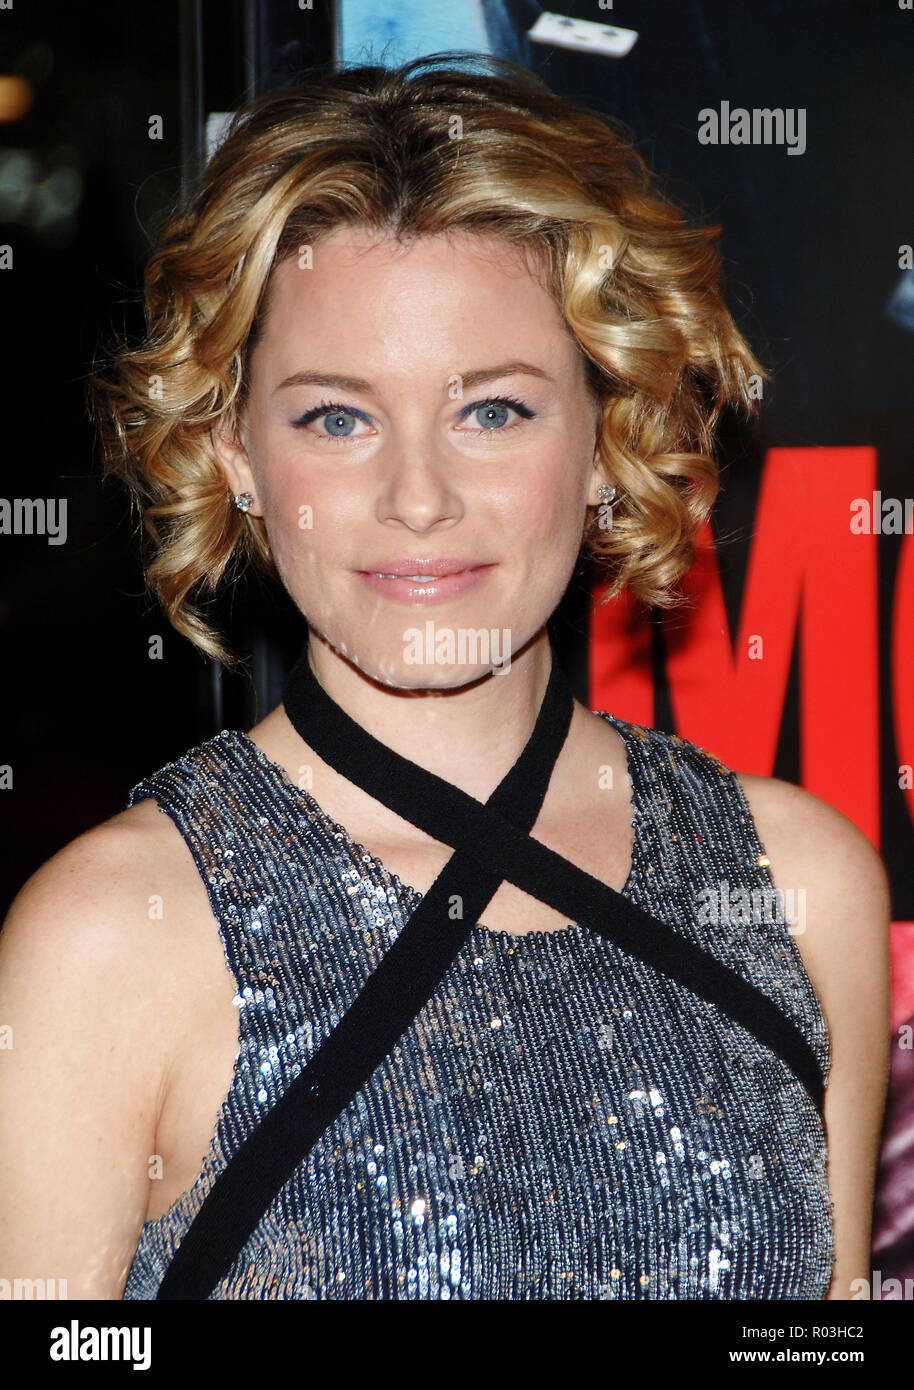 Elizabeth Banks arriving at the Smokin' Aces at the Chinese Theatre In Los Angeles. January 18, 2007.  eye contact portrait headshot silver metal dressBanksElizabeth042 Red Carpet Event, Vertical, USA, Film Industry, Celebrities,  Photography, Bestof, Arts Culture and Entertainment, Topix Celebrities fashion /  Vertical, Best of, Event in Hollywood Life - California,  Red Carpet and backstage, USA, Film Industry, Celebrities,  movie celebrities, TV celebrities, Music celebrities, Photography, Bestof, Arts Culture and Entertainment,  Topix, headshot, vertical, one person,, from the year , 2007, - Stock Image